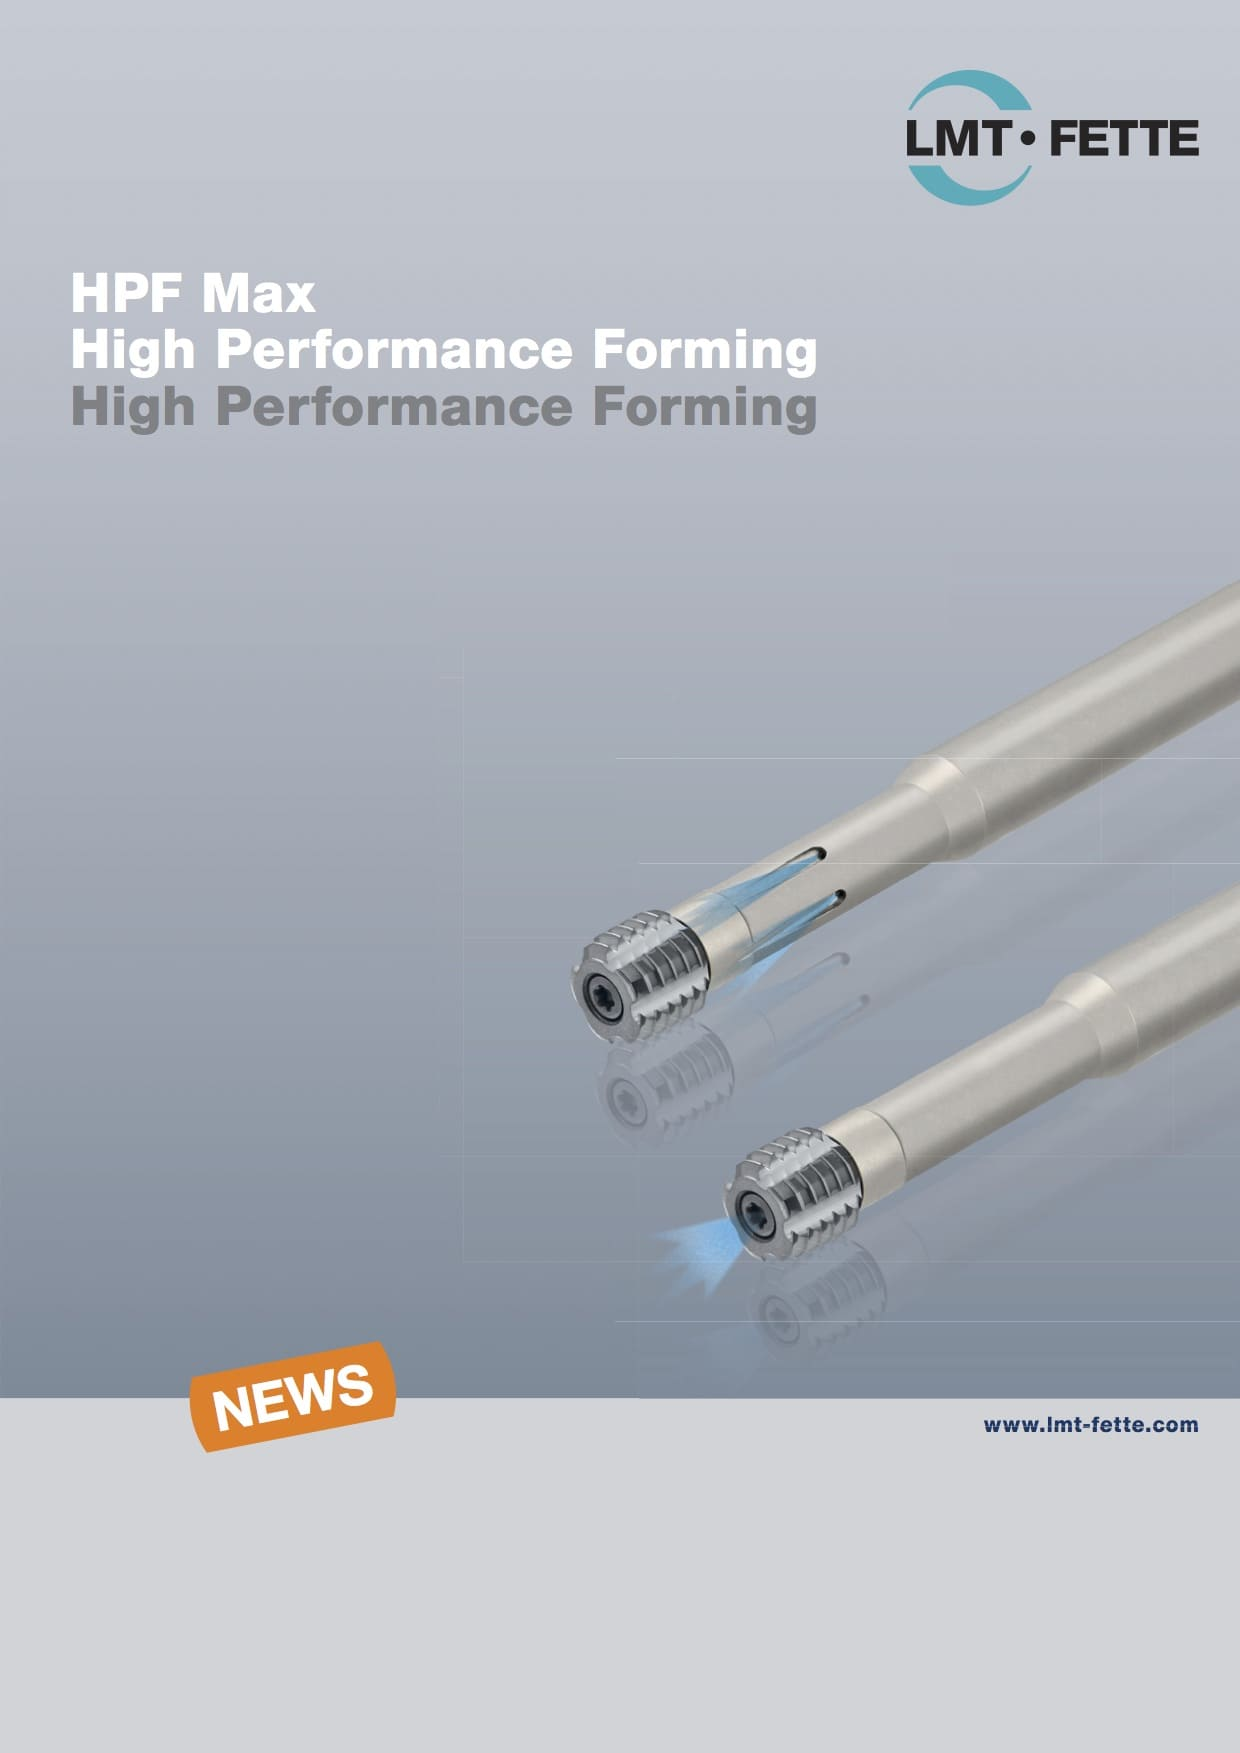 HPF Max - High Performance Forming